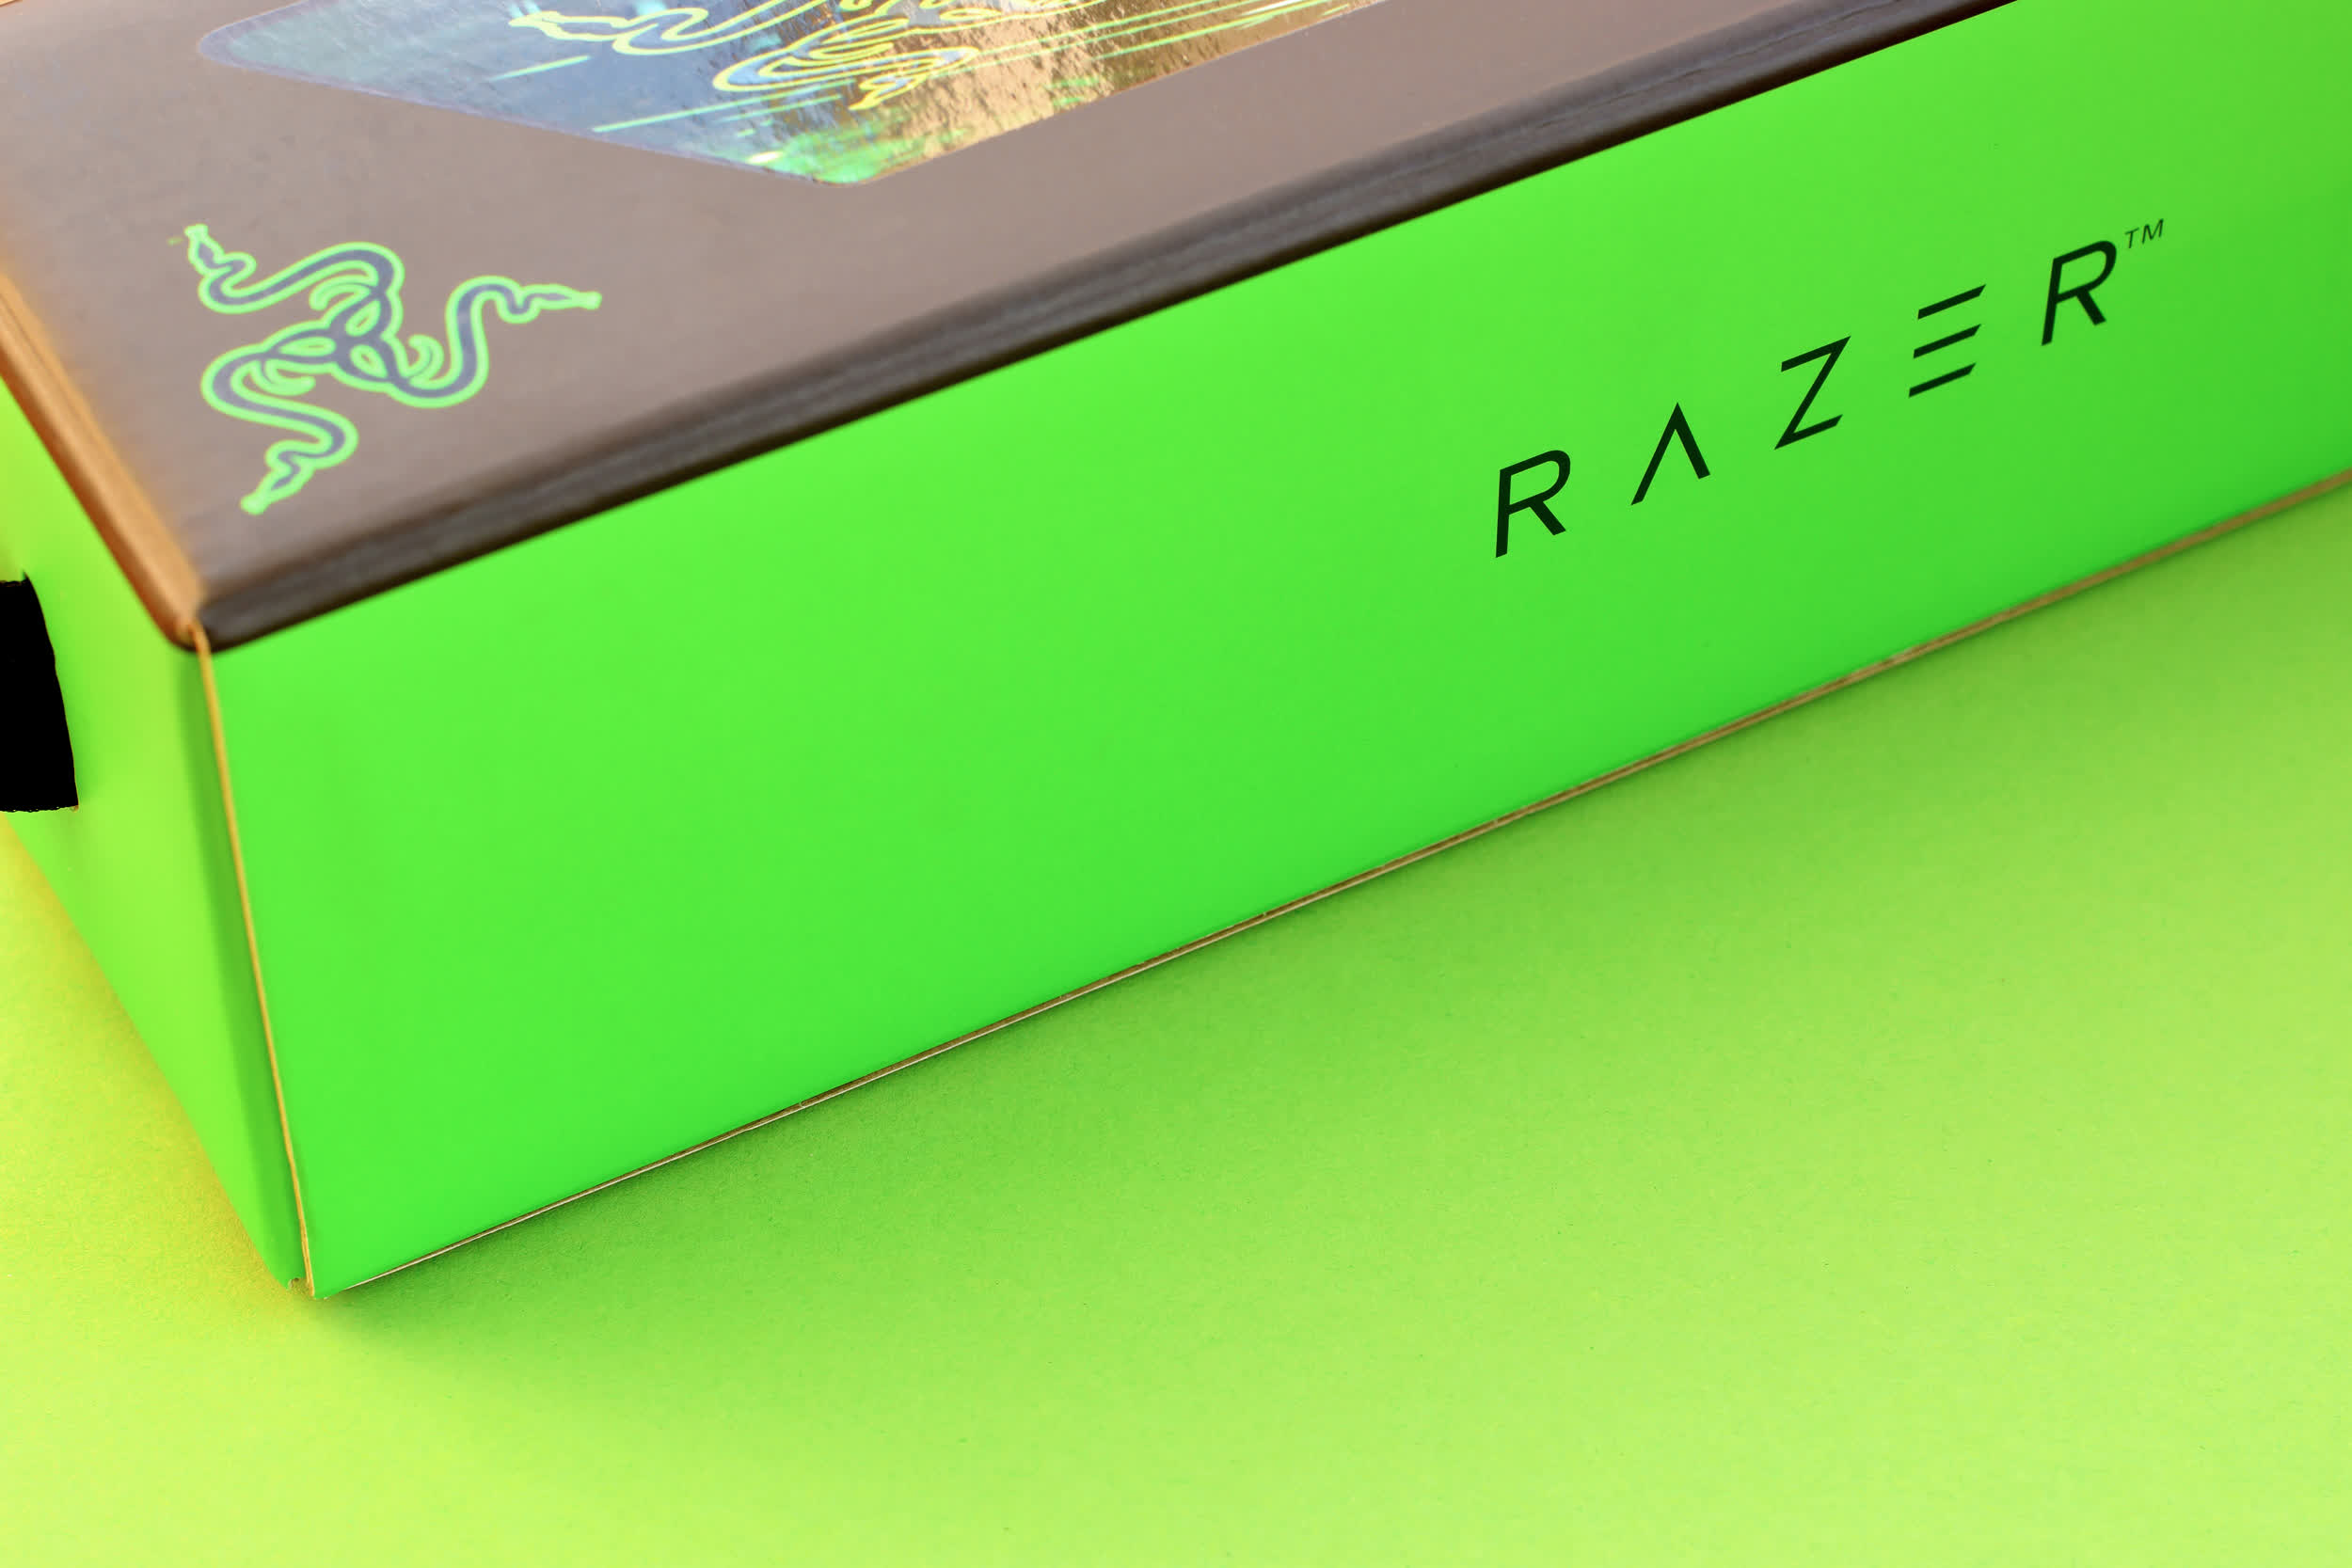 Razer PC gaming accessories are up to 25 percent off at Best Buy for a limited time